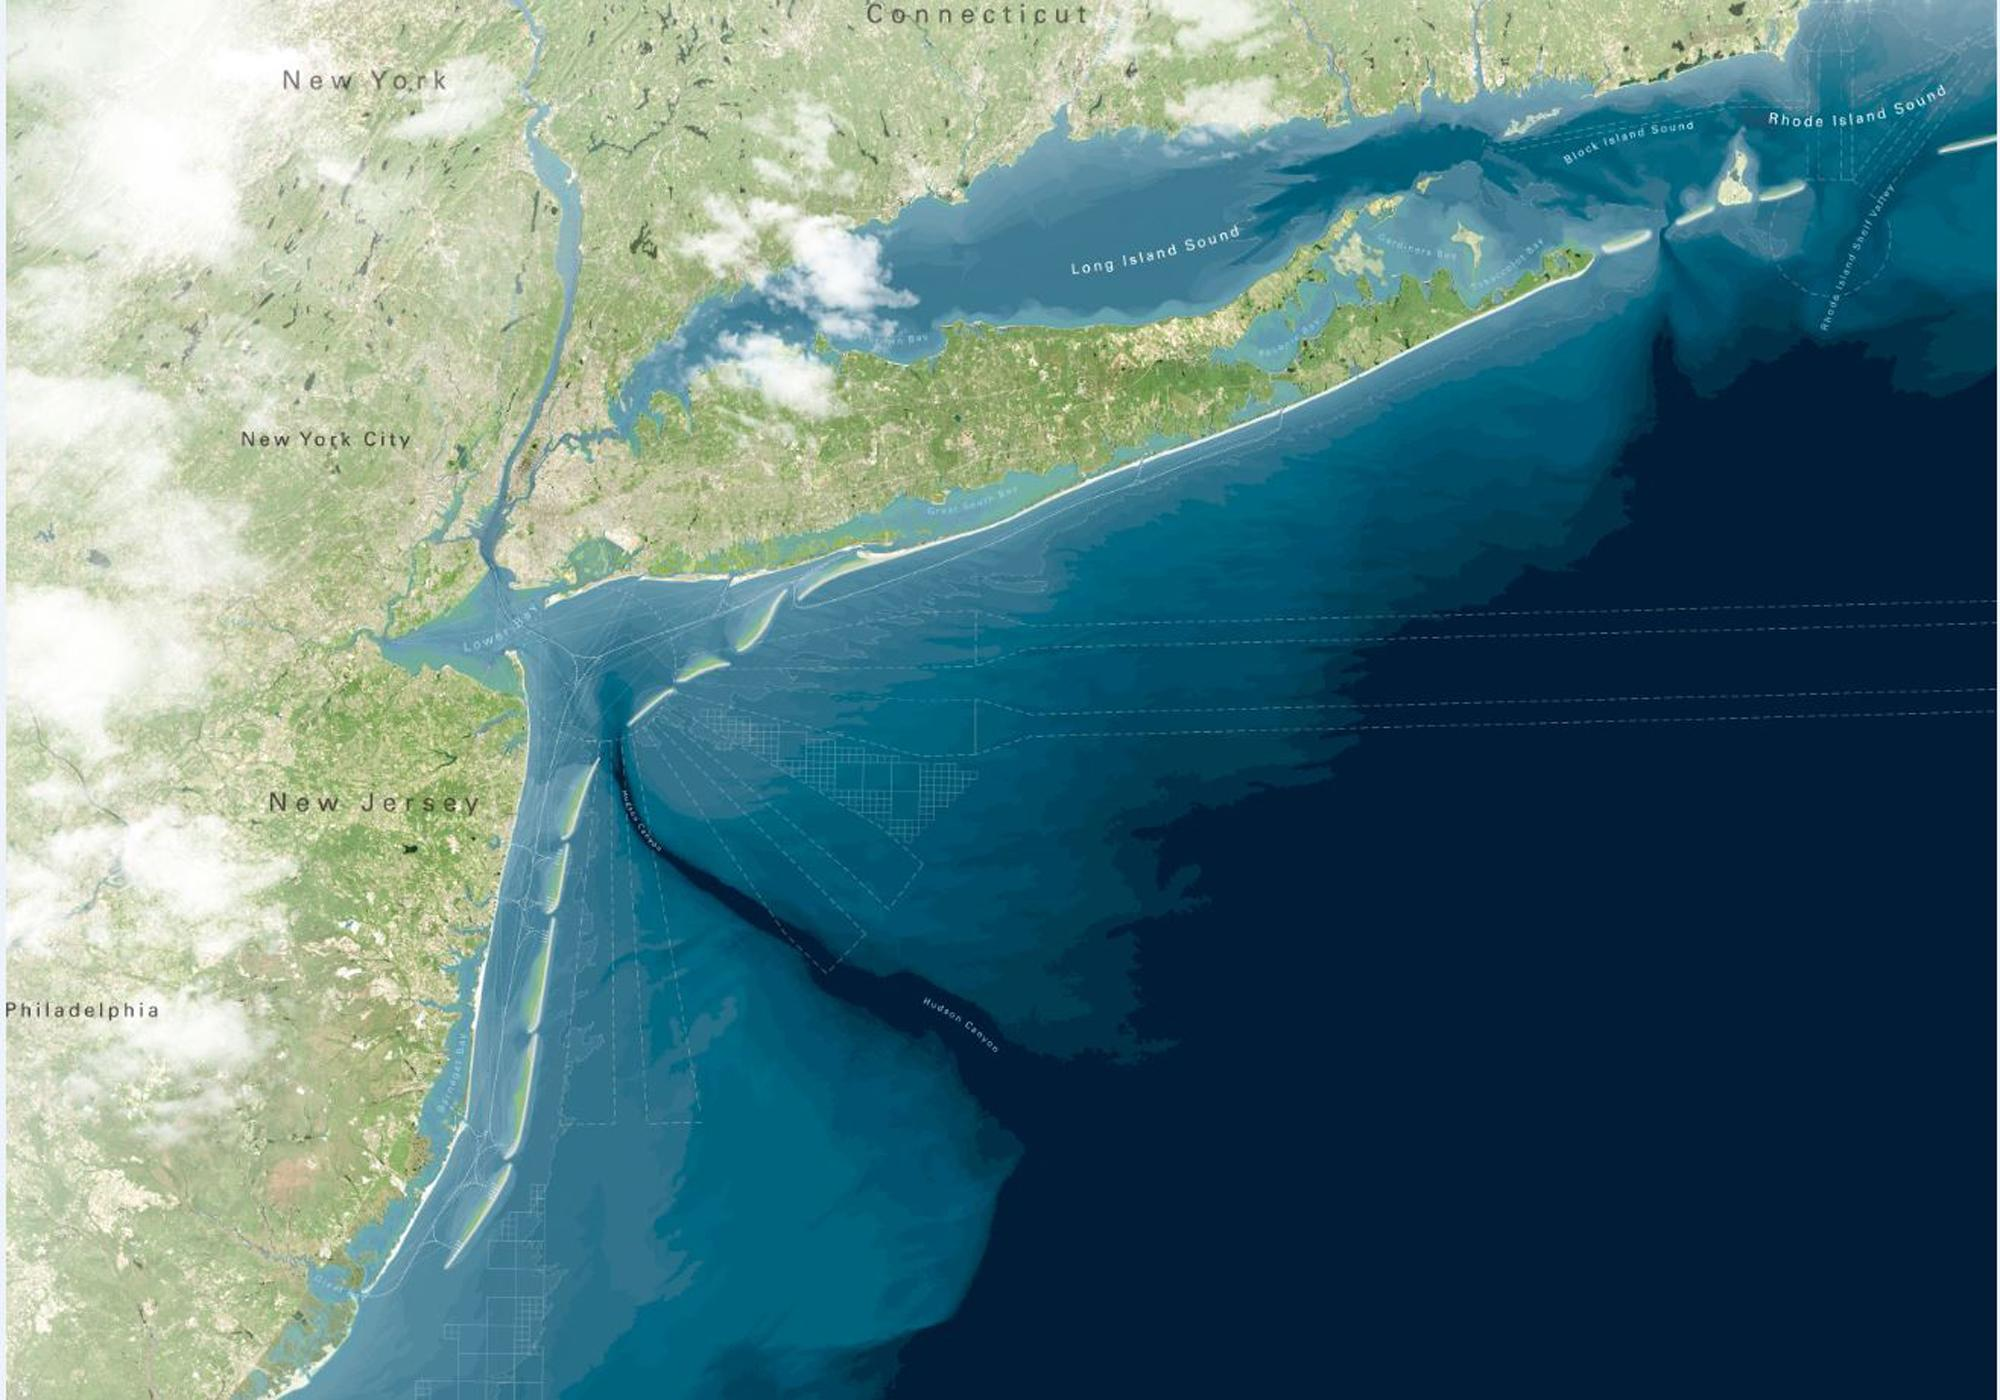 """This artist rendering provided by WXY/West 8/Stevens Institute of Technology shows a proposed project to create a string of artificial barrier islands off the coast of New Jersey and New York to protect the shoreline from storm surges like the ones that caused billions of dollars' worth of damage during Superstorm Sandy. The """"Blue Dunes"""" project, conceived by New Jersey's Stevens Institute of Technology and two architectural firms, would cost $10 billion to $12 billion, and would stretch from central Long Island, N.Y., to the southern tip of Long Beach Island in New Jersey. Many logistical, political, financial and technical issues would have to be overcome before the project could be built. It is part of the Rebuild By Design contest being held by the U.S. Department of Housing and Urban Development to solicit new ideas to protect the region from future storms. (AP Photo/WXY/West 8/Stevens Institute of Technology)"""